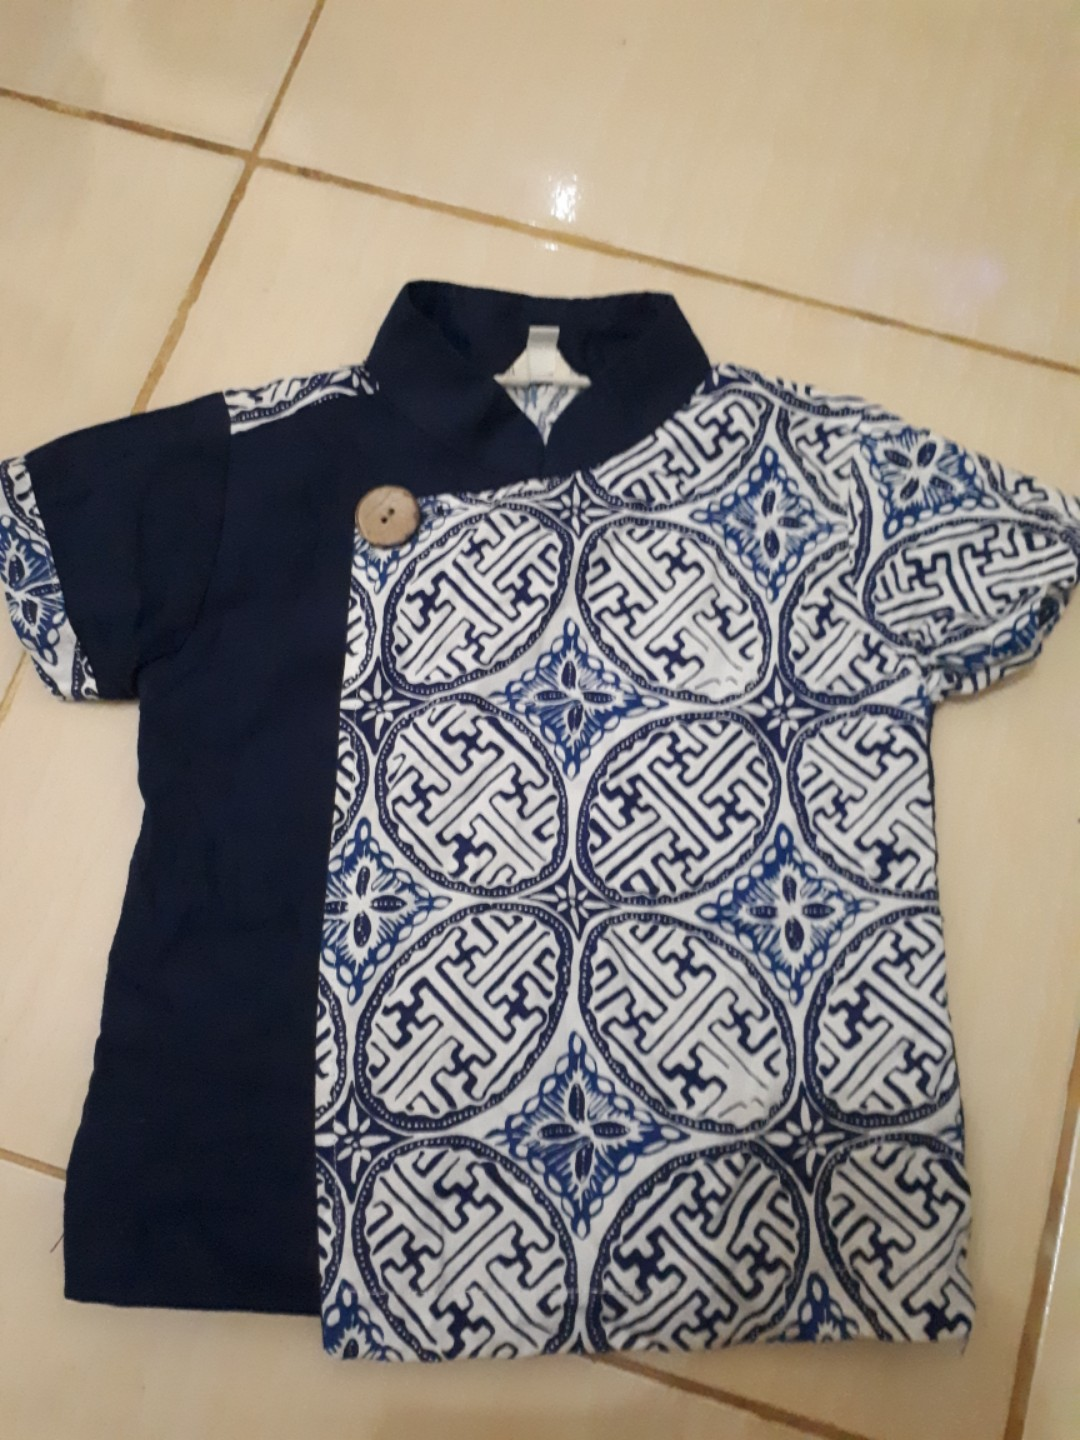 Batik Anak Laki Laki Babies Kids Boys Apparel 1 To 3 Years On